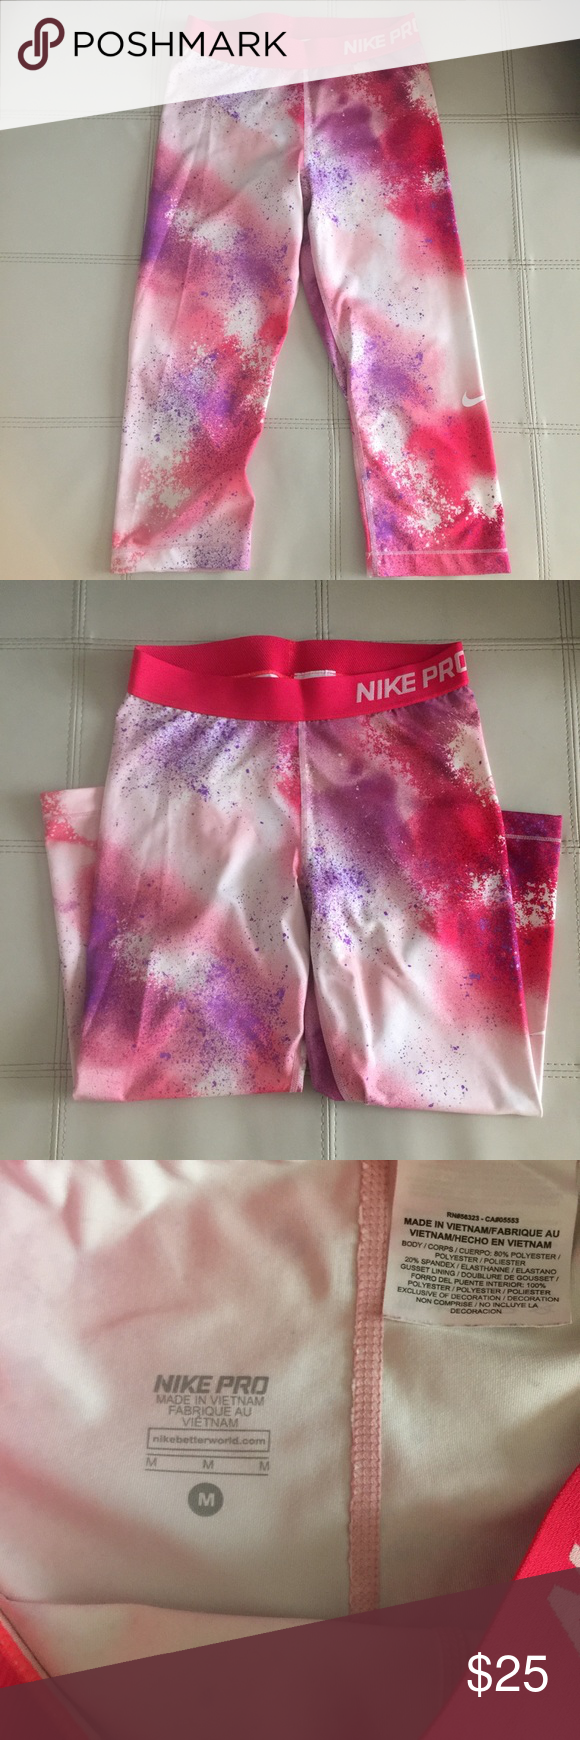 NIKE PRO Capri Leggings Size Medium Nike Pro Capri leggings. Size Medium. New without tag attached. Nike Pants Leggings